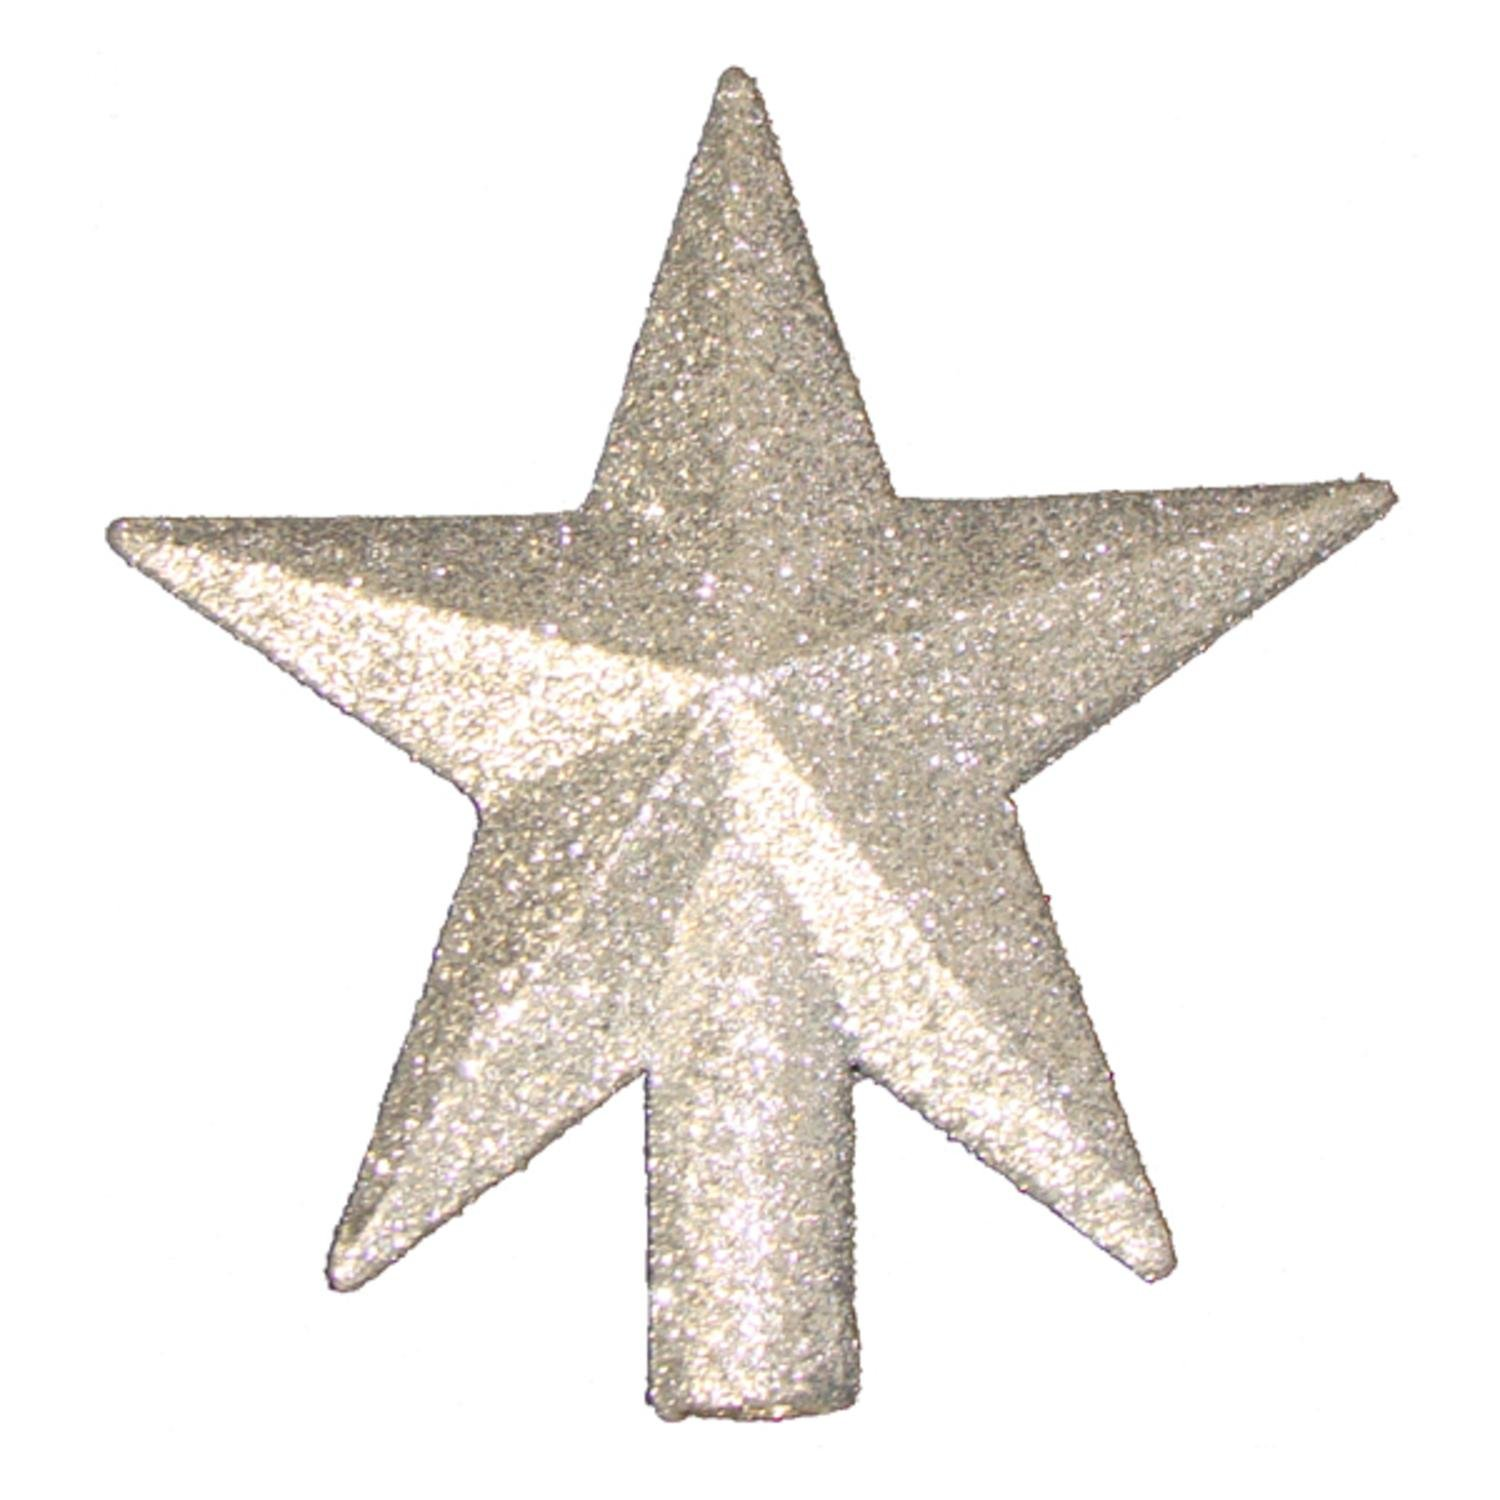 Beautiful Star Christmas Tree Toppers For A Dazzling ...